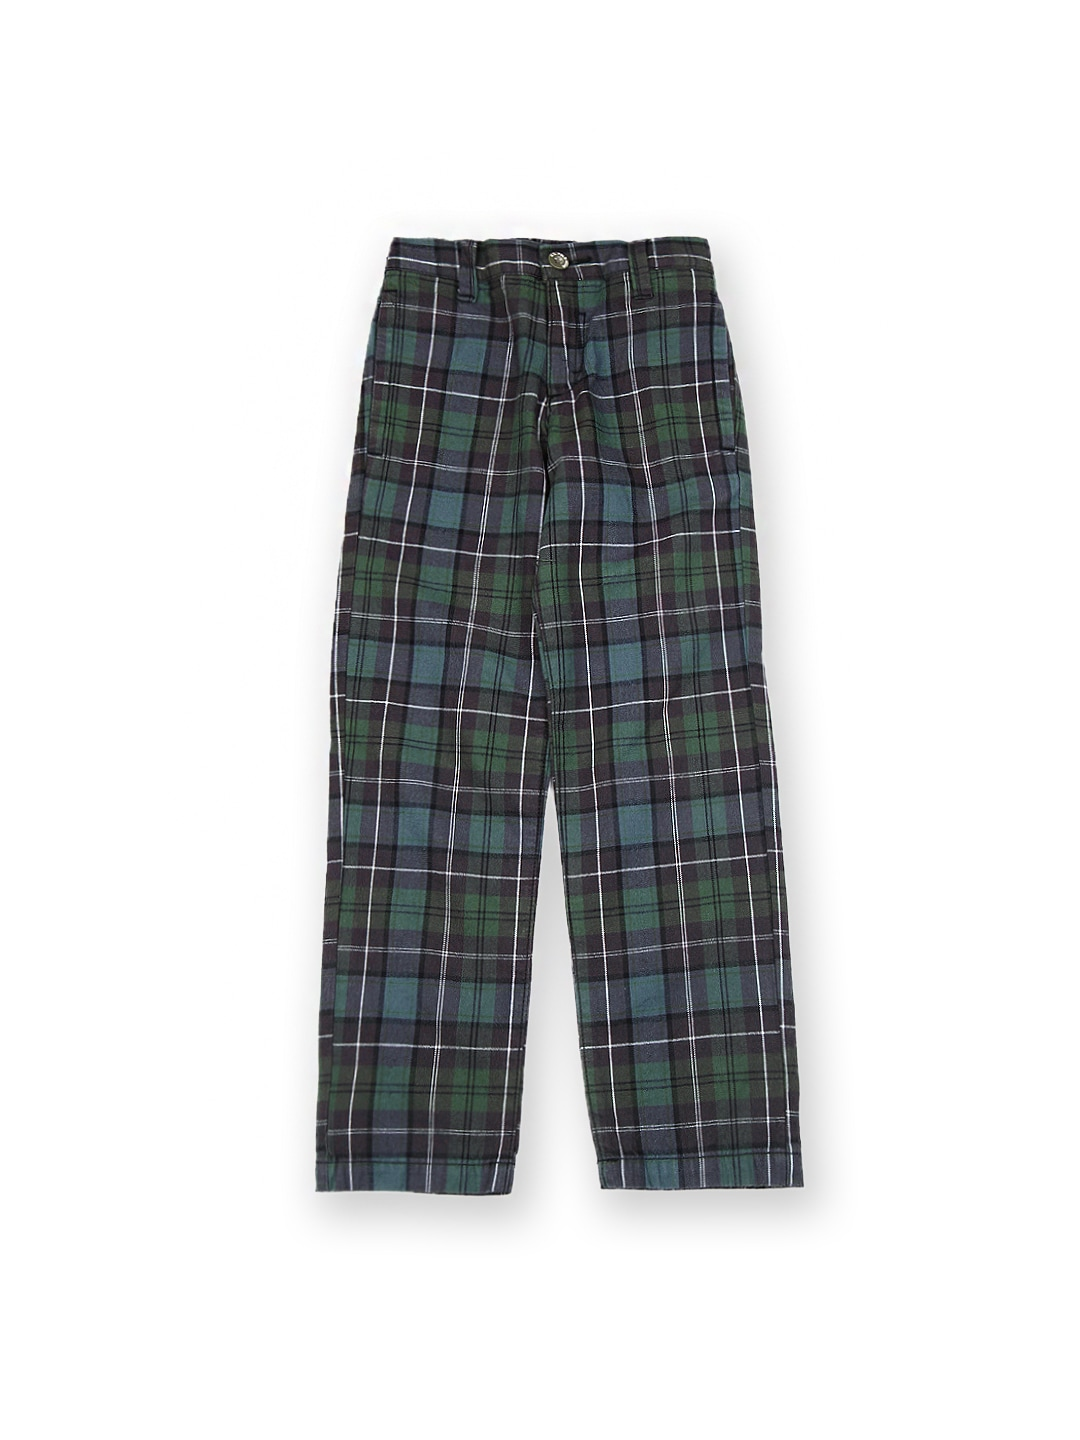 U.S. Polo Assn. Kids Boys Green & Charcoal Grey Checked Trousers